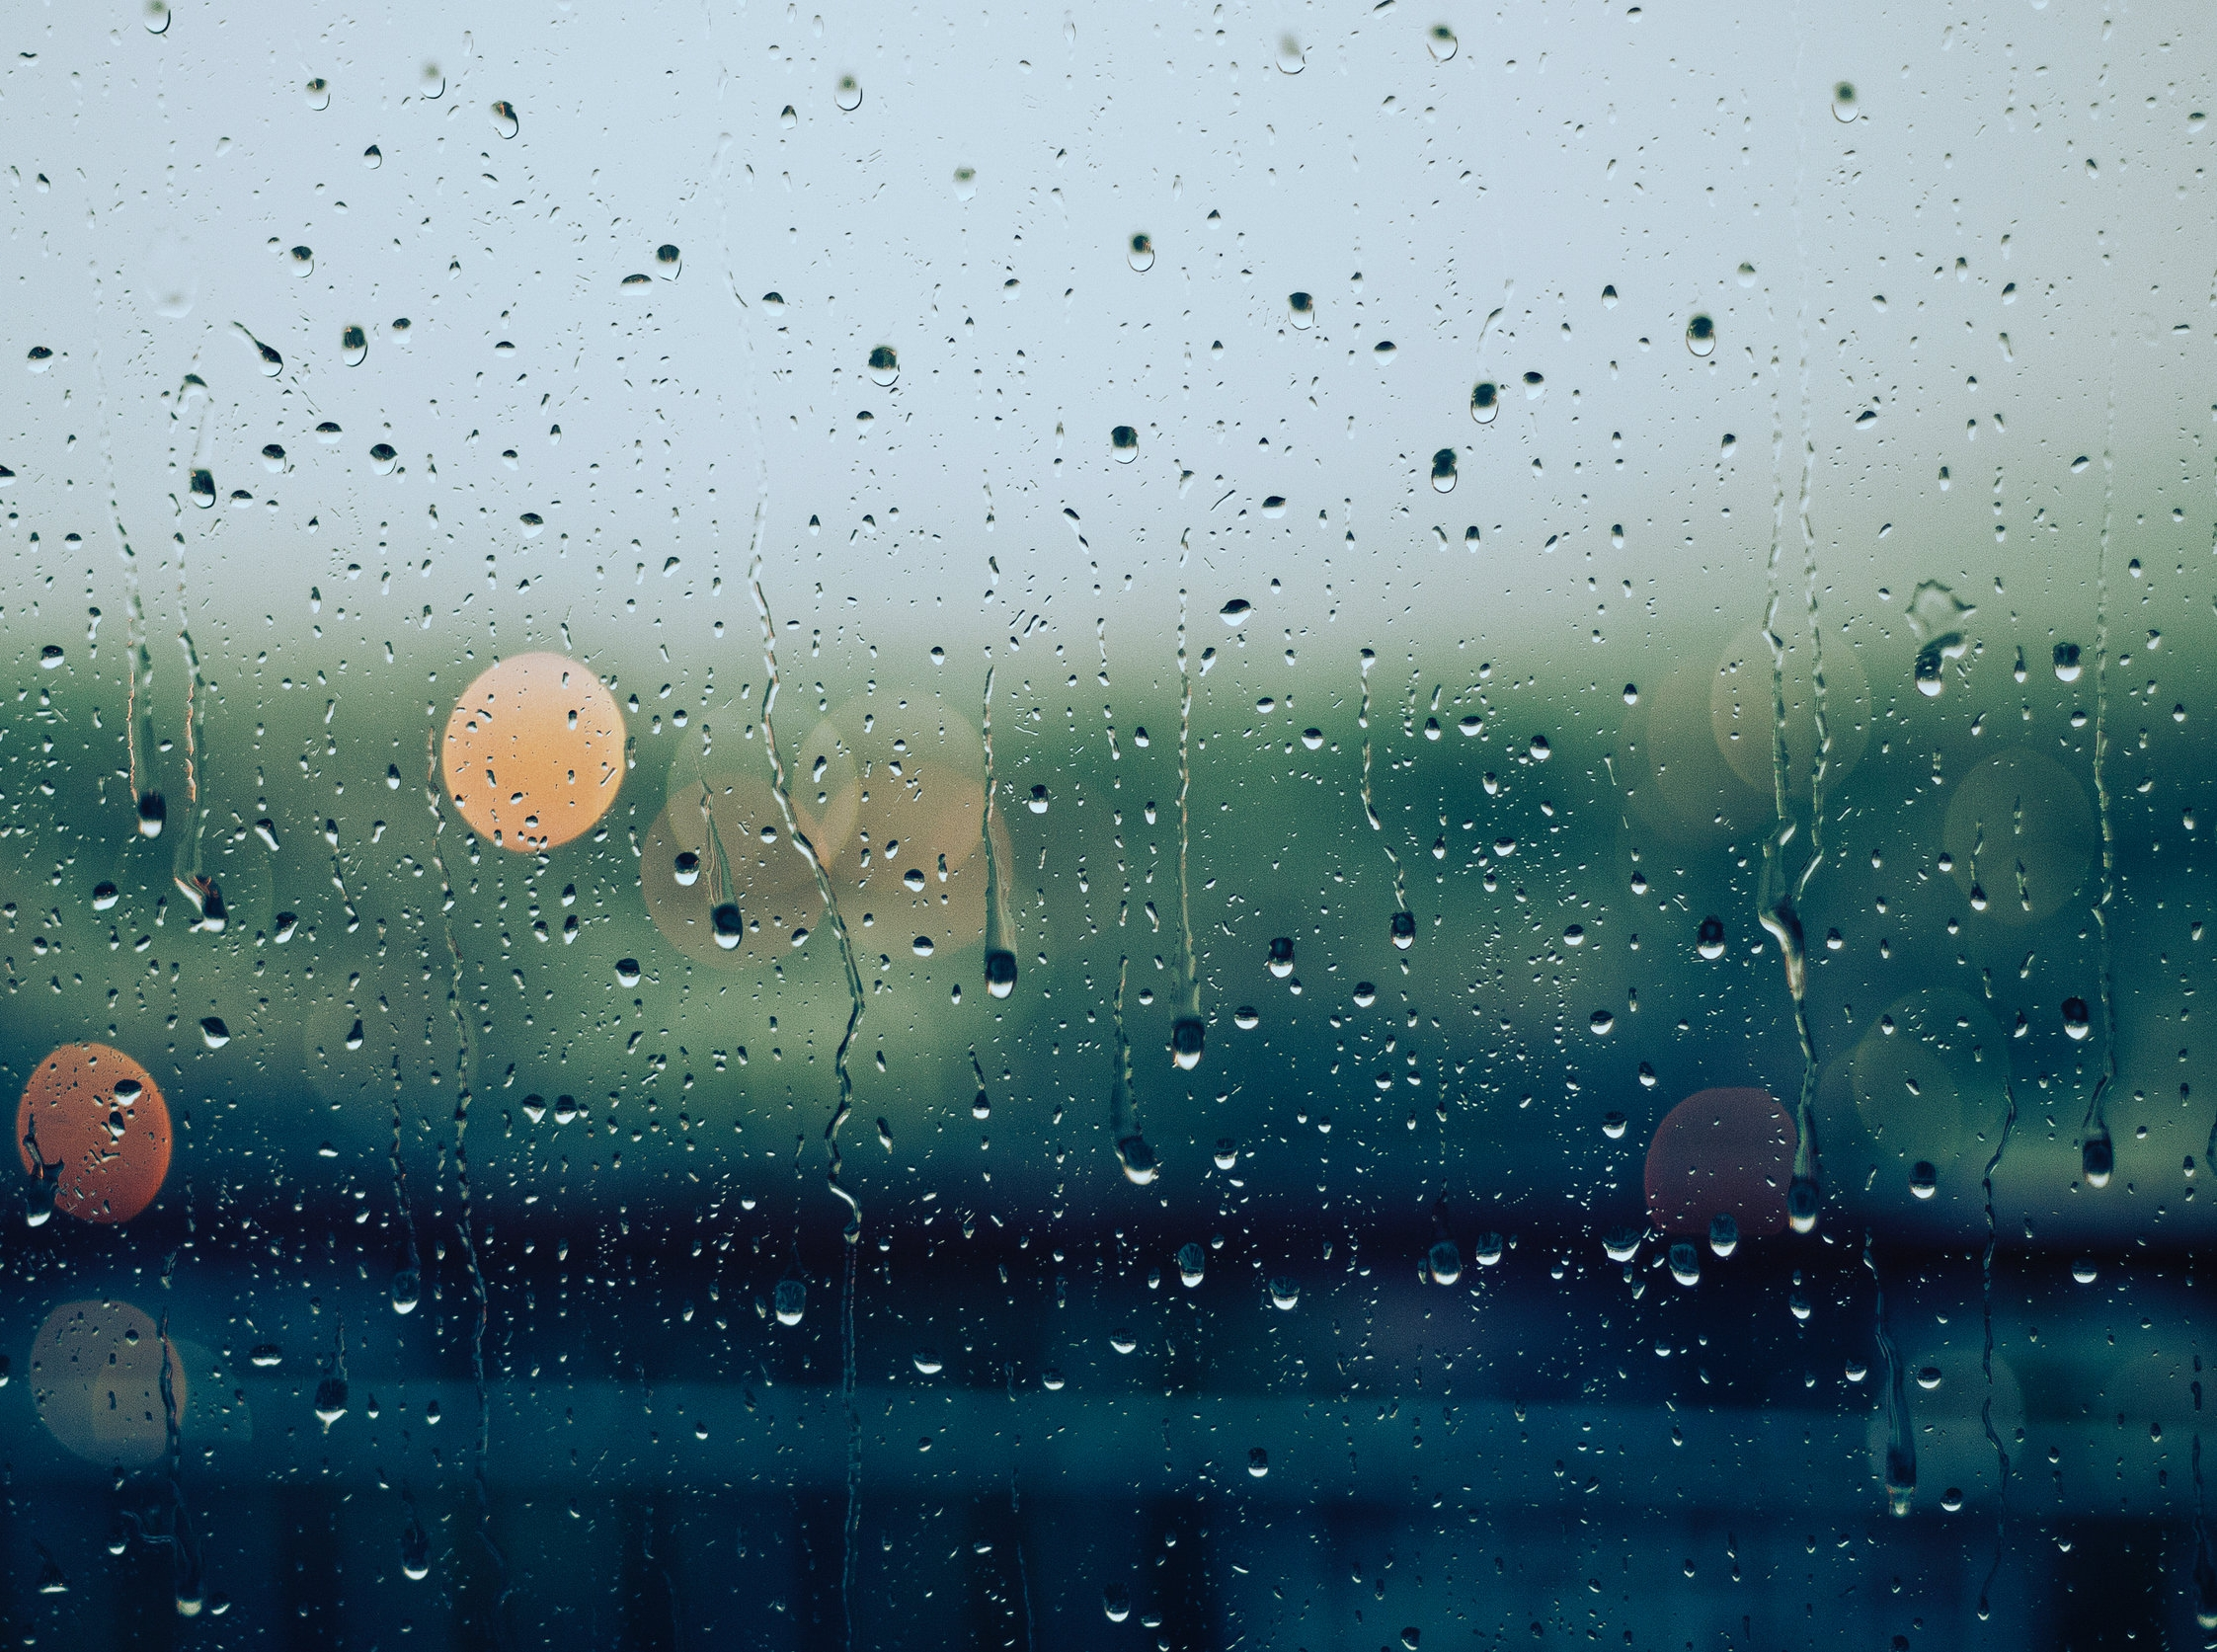 rain-on-window.jpg